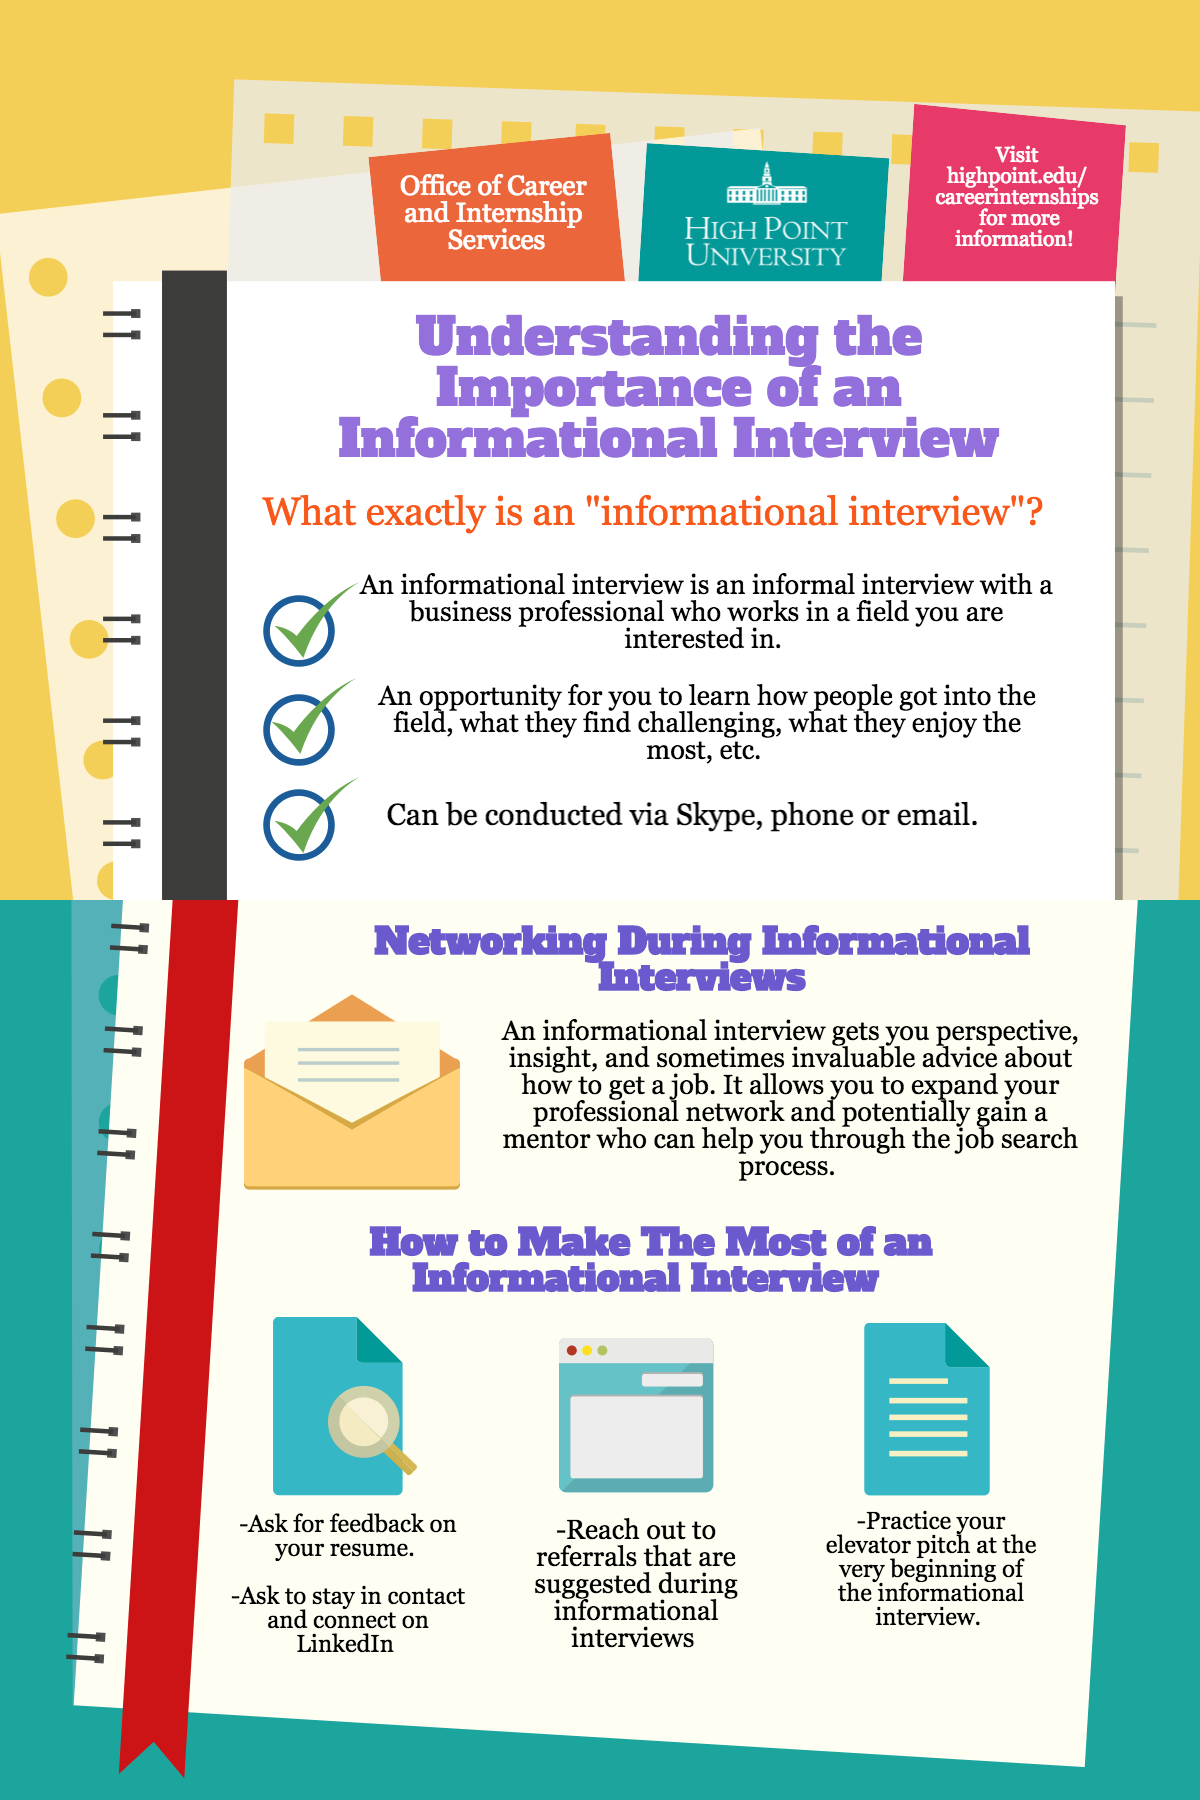 Understanding the Importance of an Informational Interview